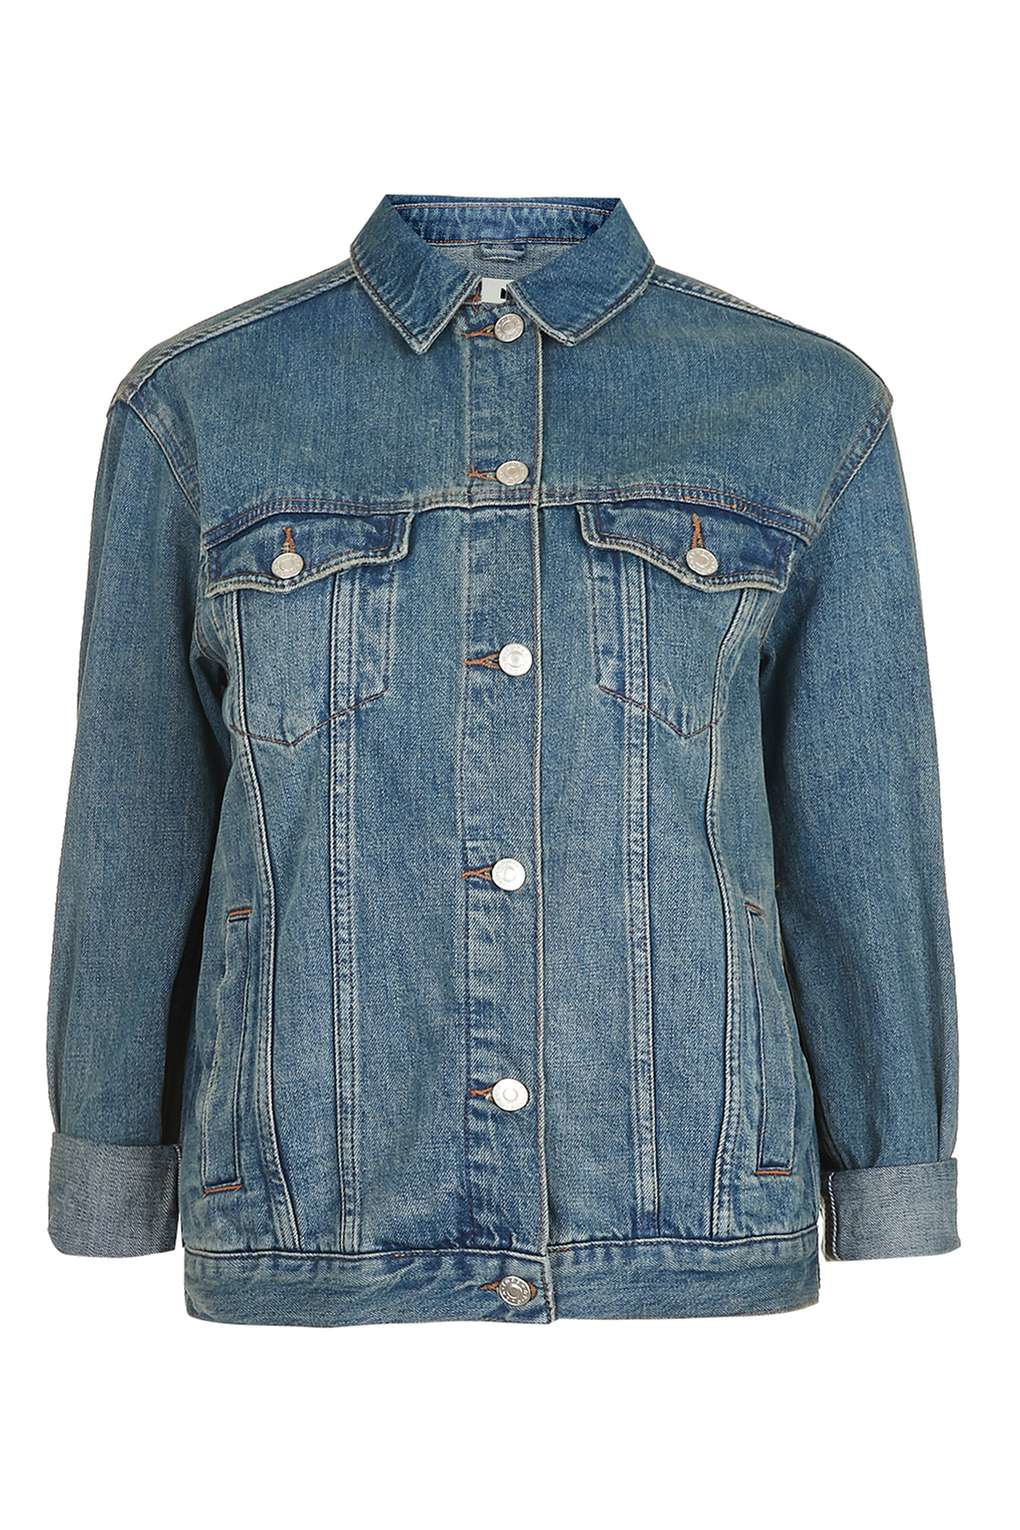 This Men's Wrangler Western Denim Jacket is one that every cowboy needs. The % heavy weight cotton is comfortable and durable while working and riding. The classic western styling gives this jacket its classic western look and fit.5/5(3).